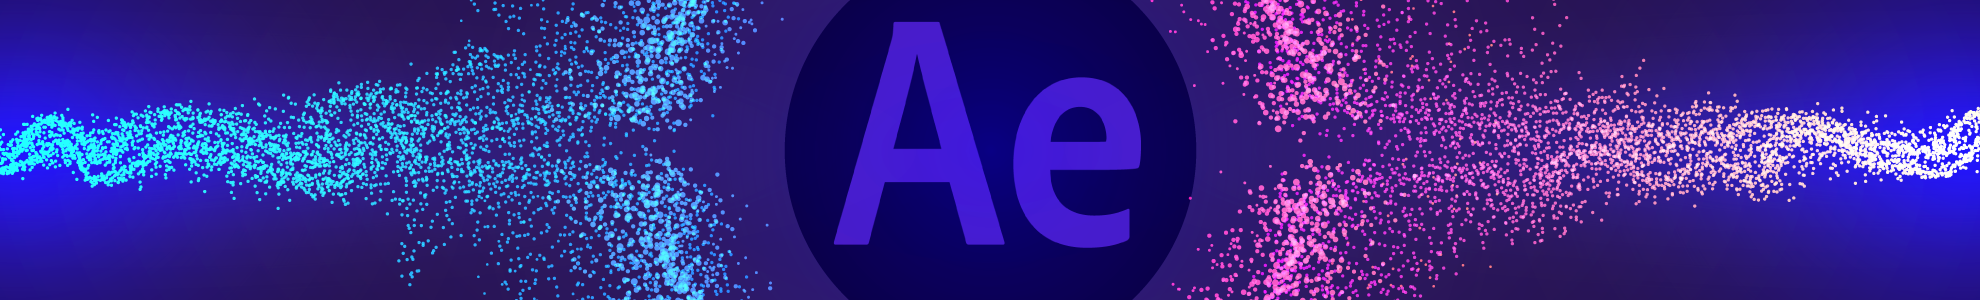 Curso Adobe After Effects en madrid